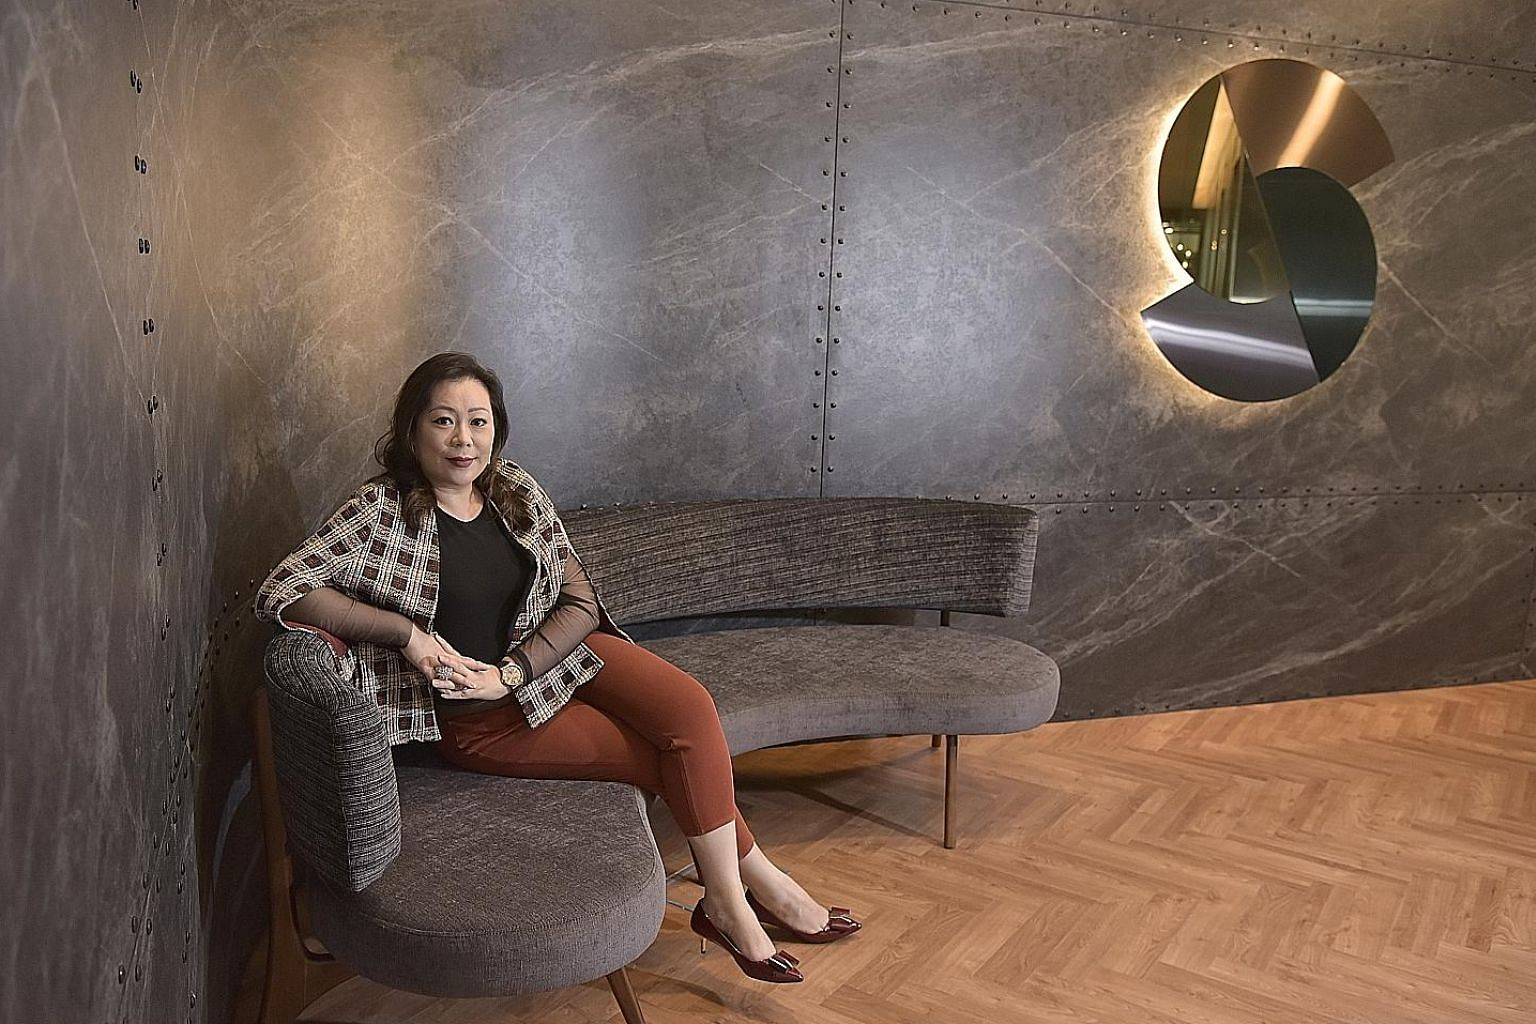 Ms Cheryl Lee, co-founder of Spectrum, is seen here at the club which takes up 28,000 sq ft of space on the fifth floor of Duo Tower in Bugis. The aim of the club is to create a community for fast-growing tech companies to tap capital and expertise.